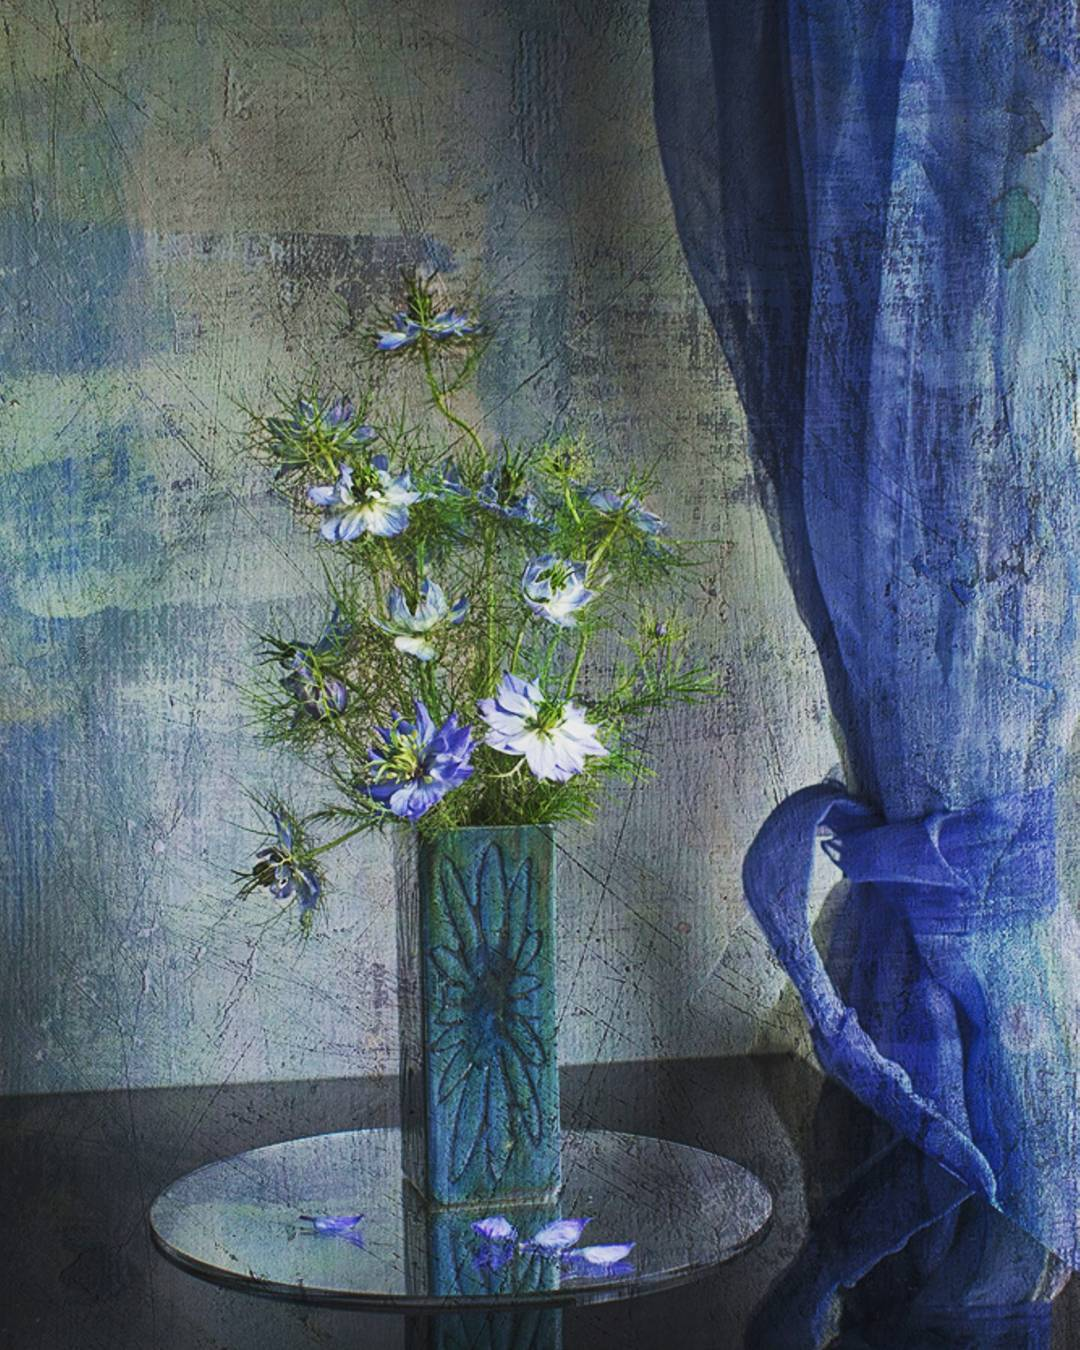 And relax! This is Cornflower Still Life by the veryhellip